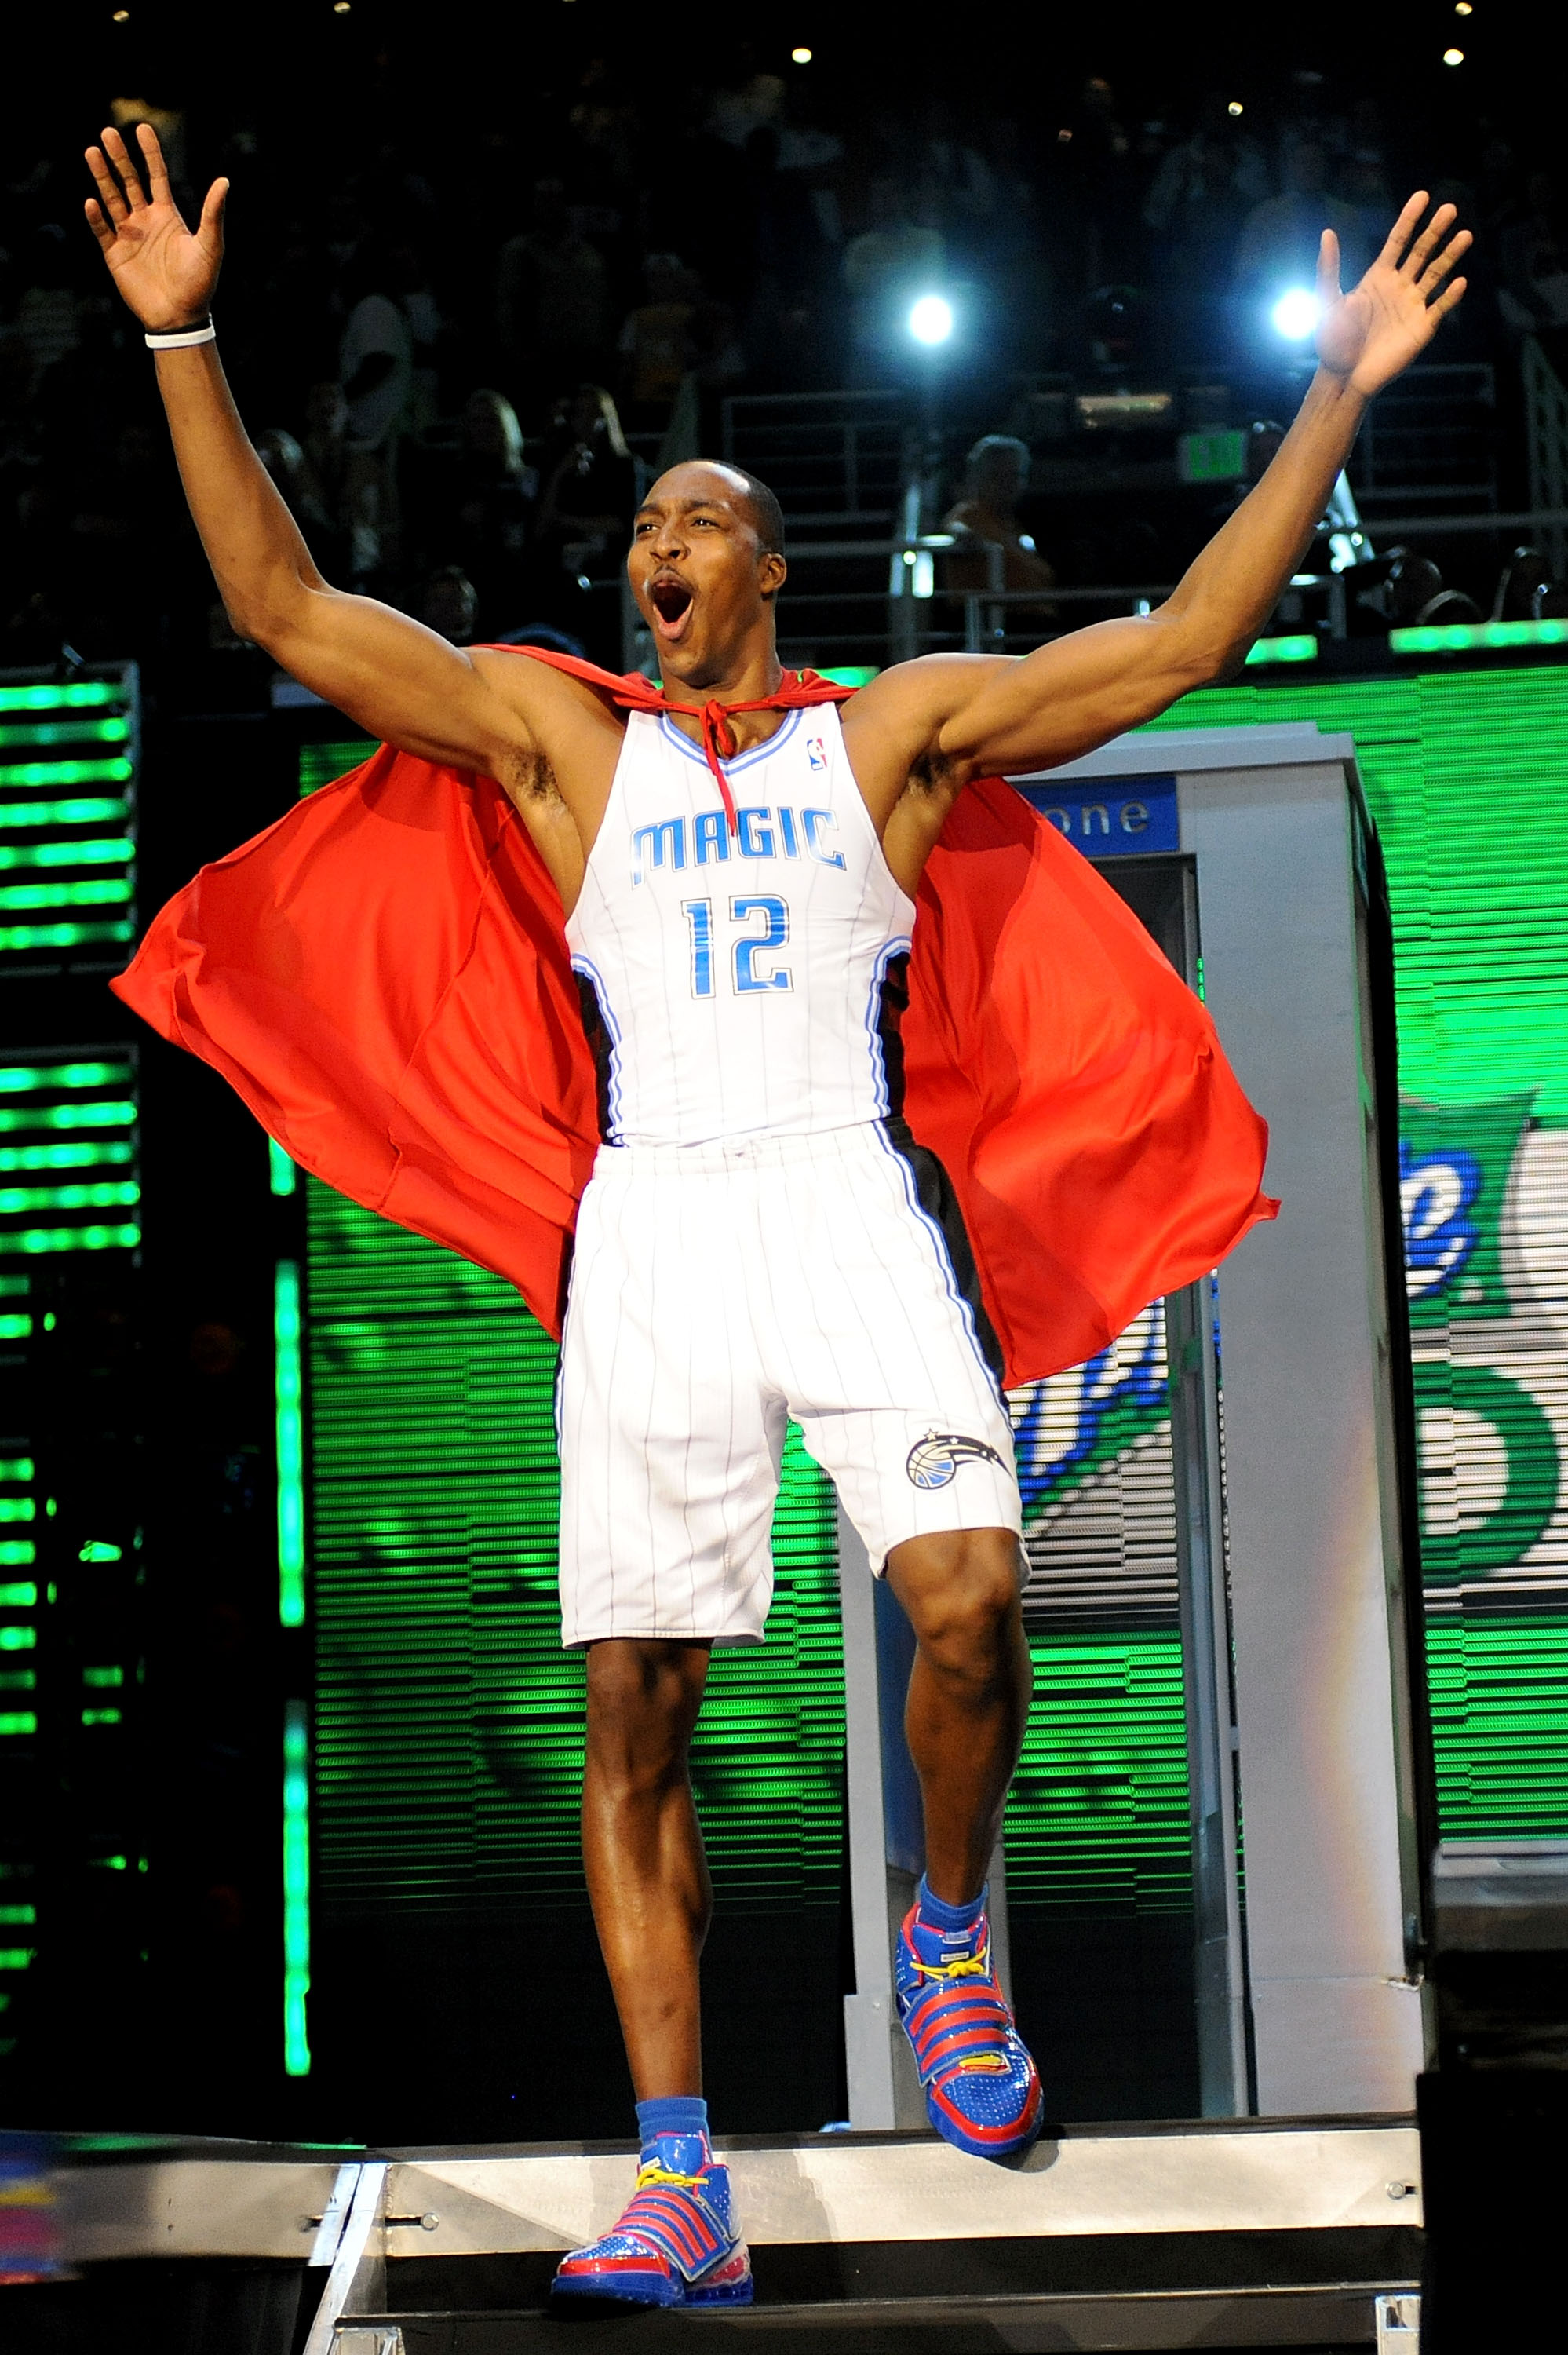 PHOENIX - FEBRUARY 14  Dwight Howard of the Orlando Magic emerges from a  phone booth abca87a65